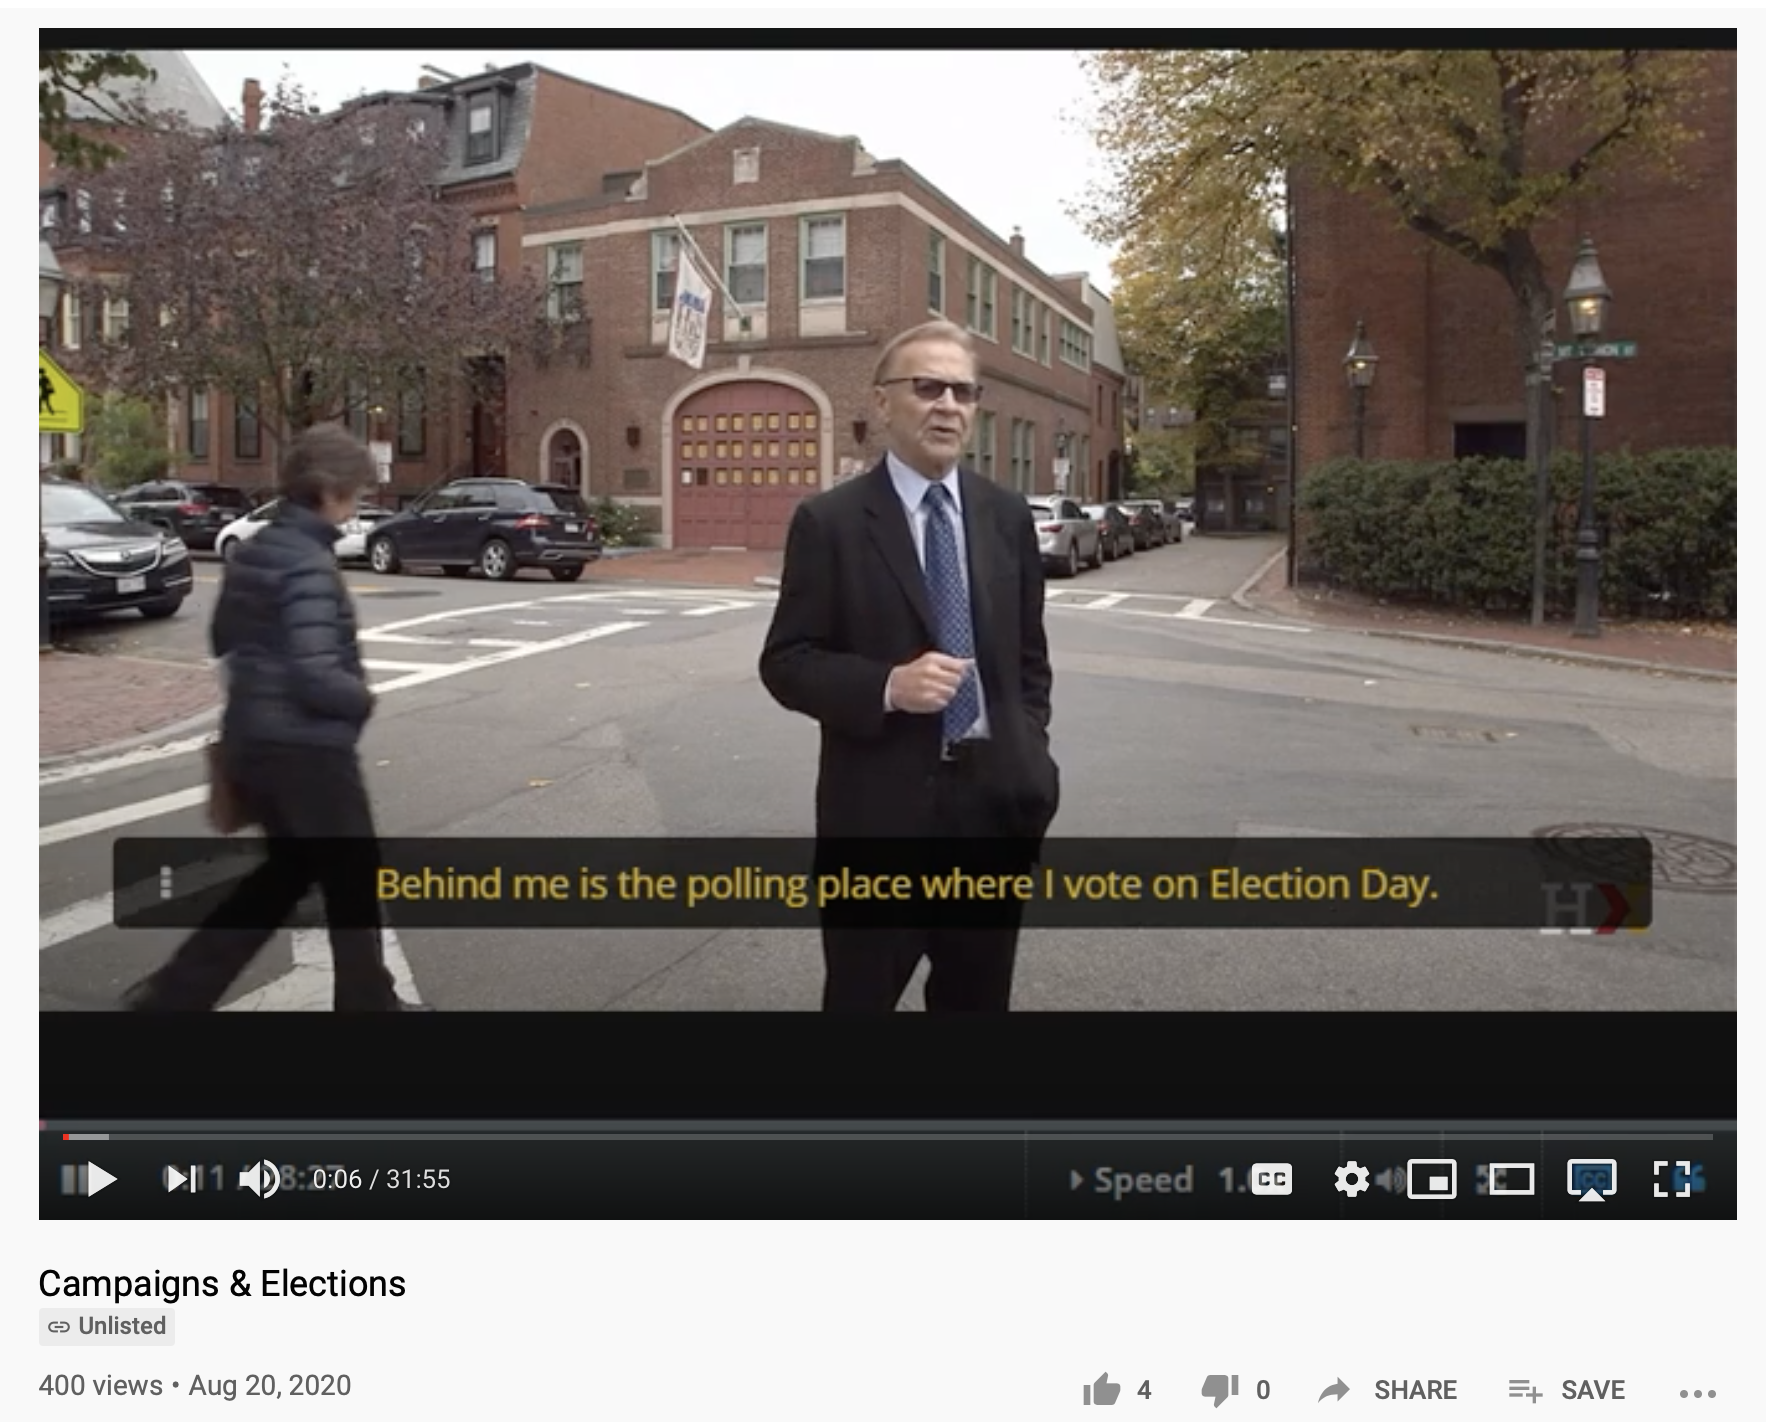 Video from Harvard Professor, William Patterson, on Campaigns & Elections available on YouTube and his HarvardX/EdX page.